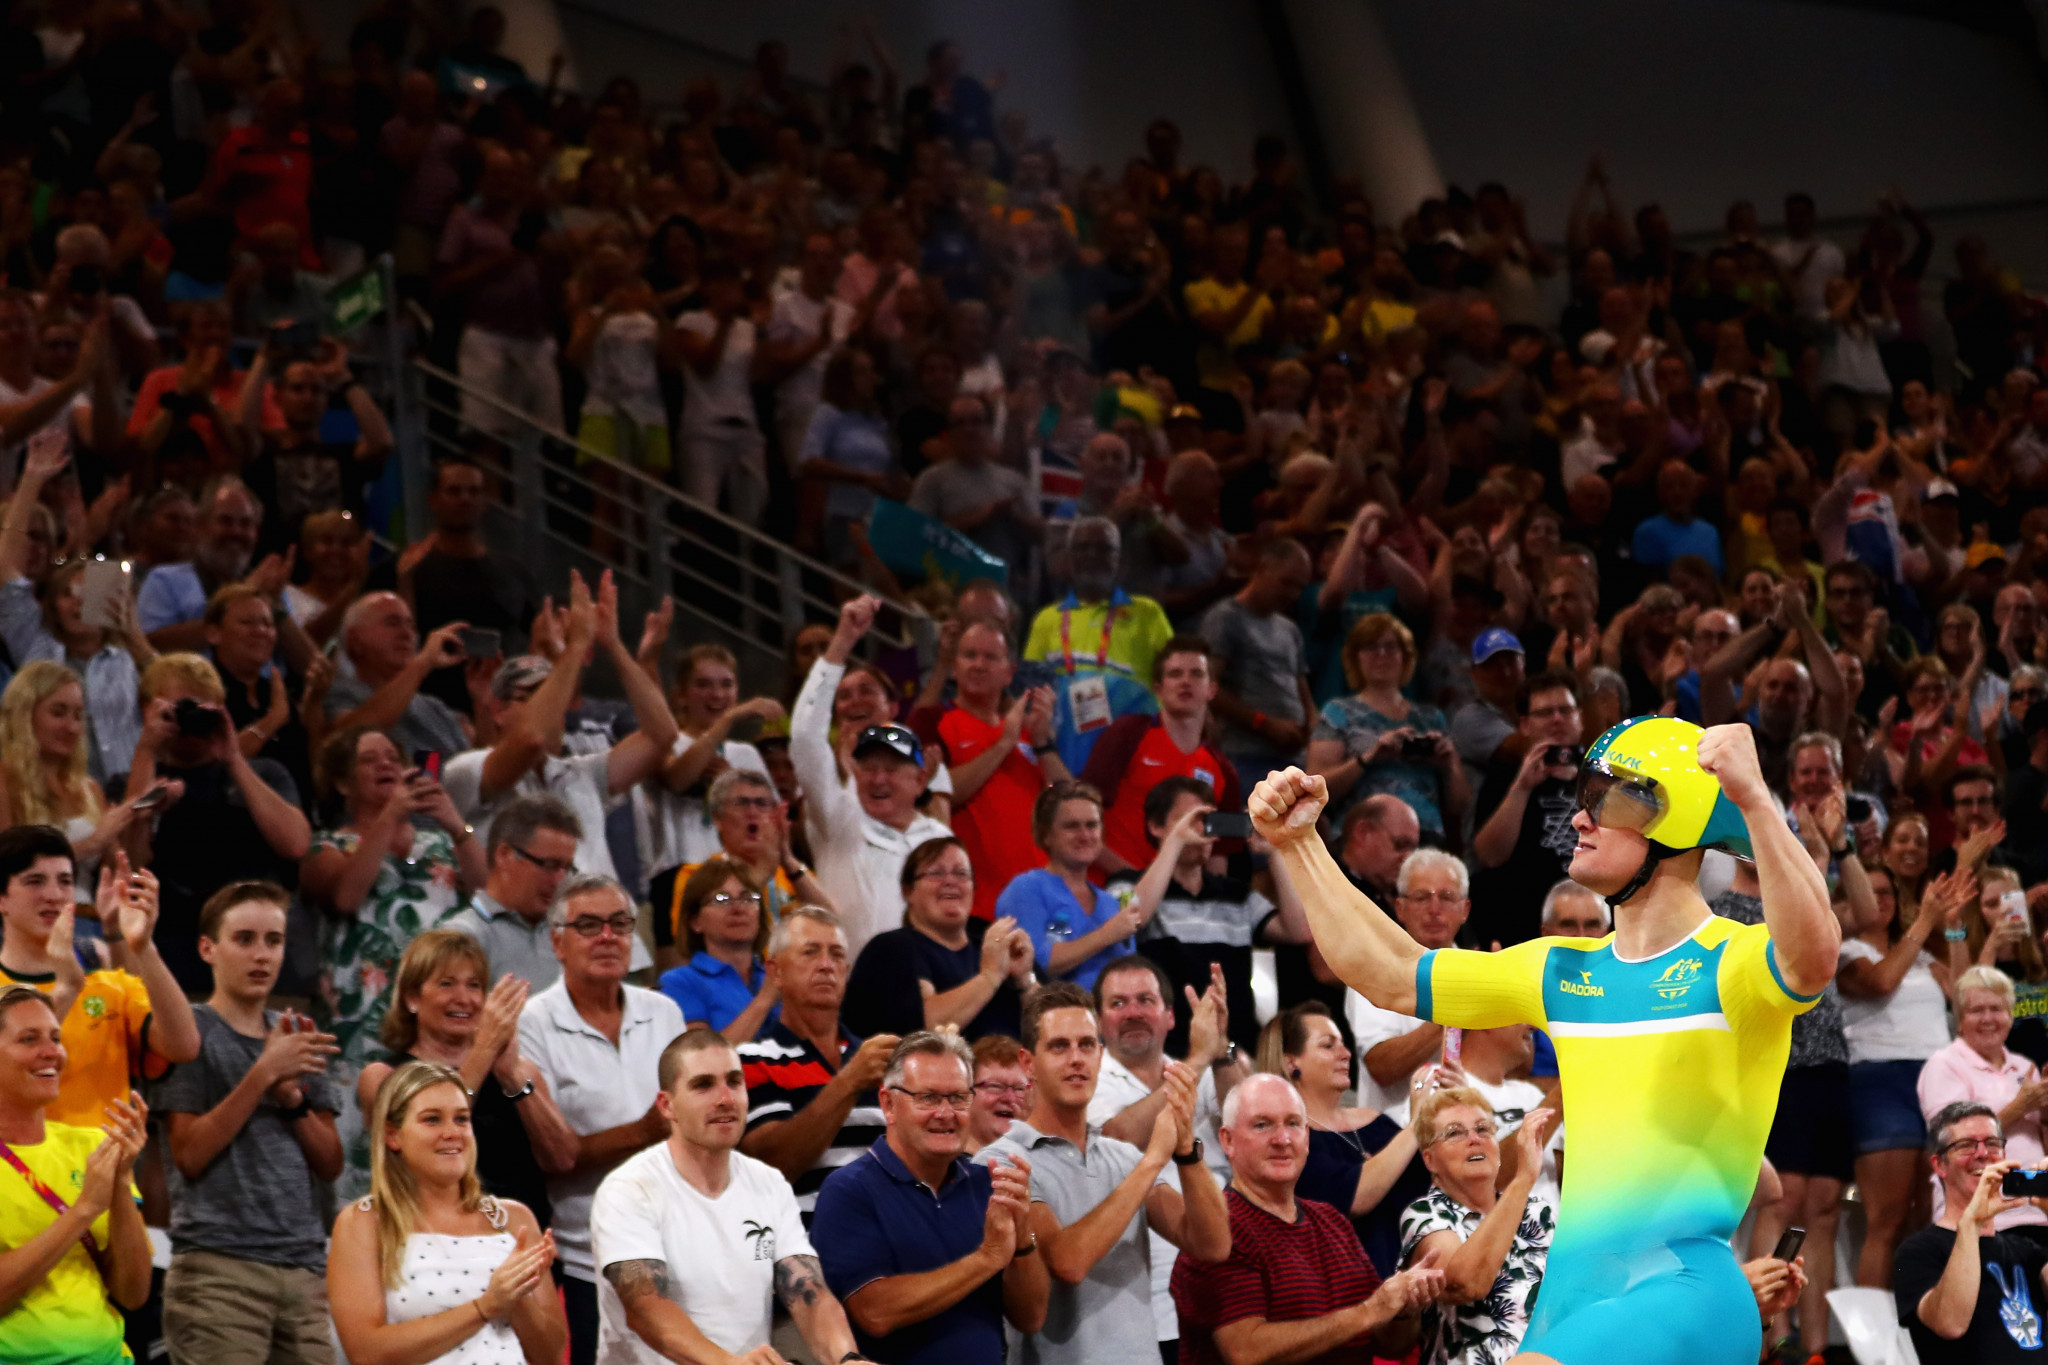 Glaetzer and Morton star again as track cycling action concludes at Gold Coast 2018